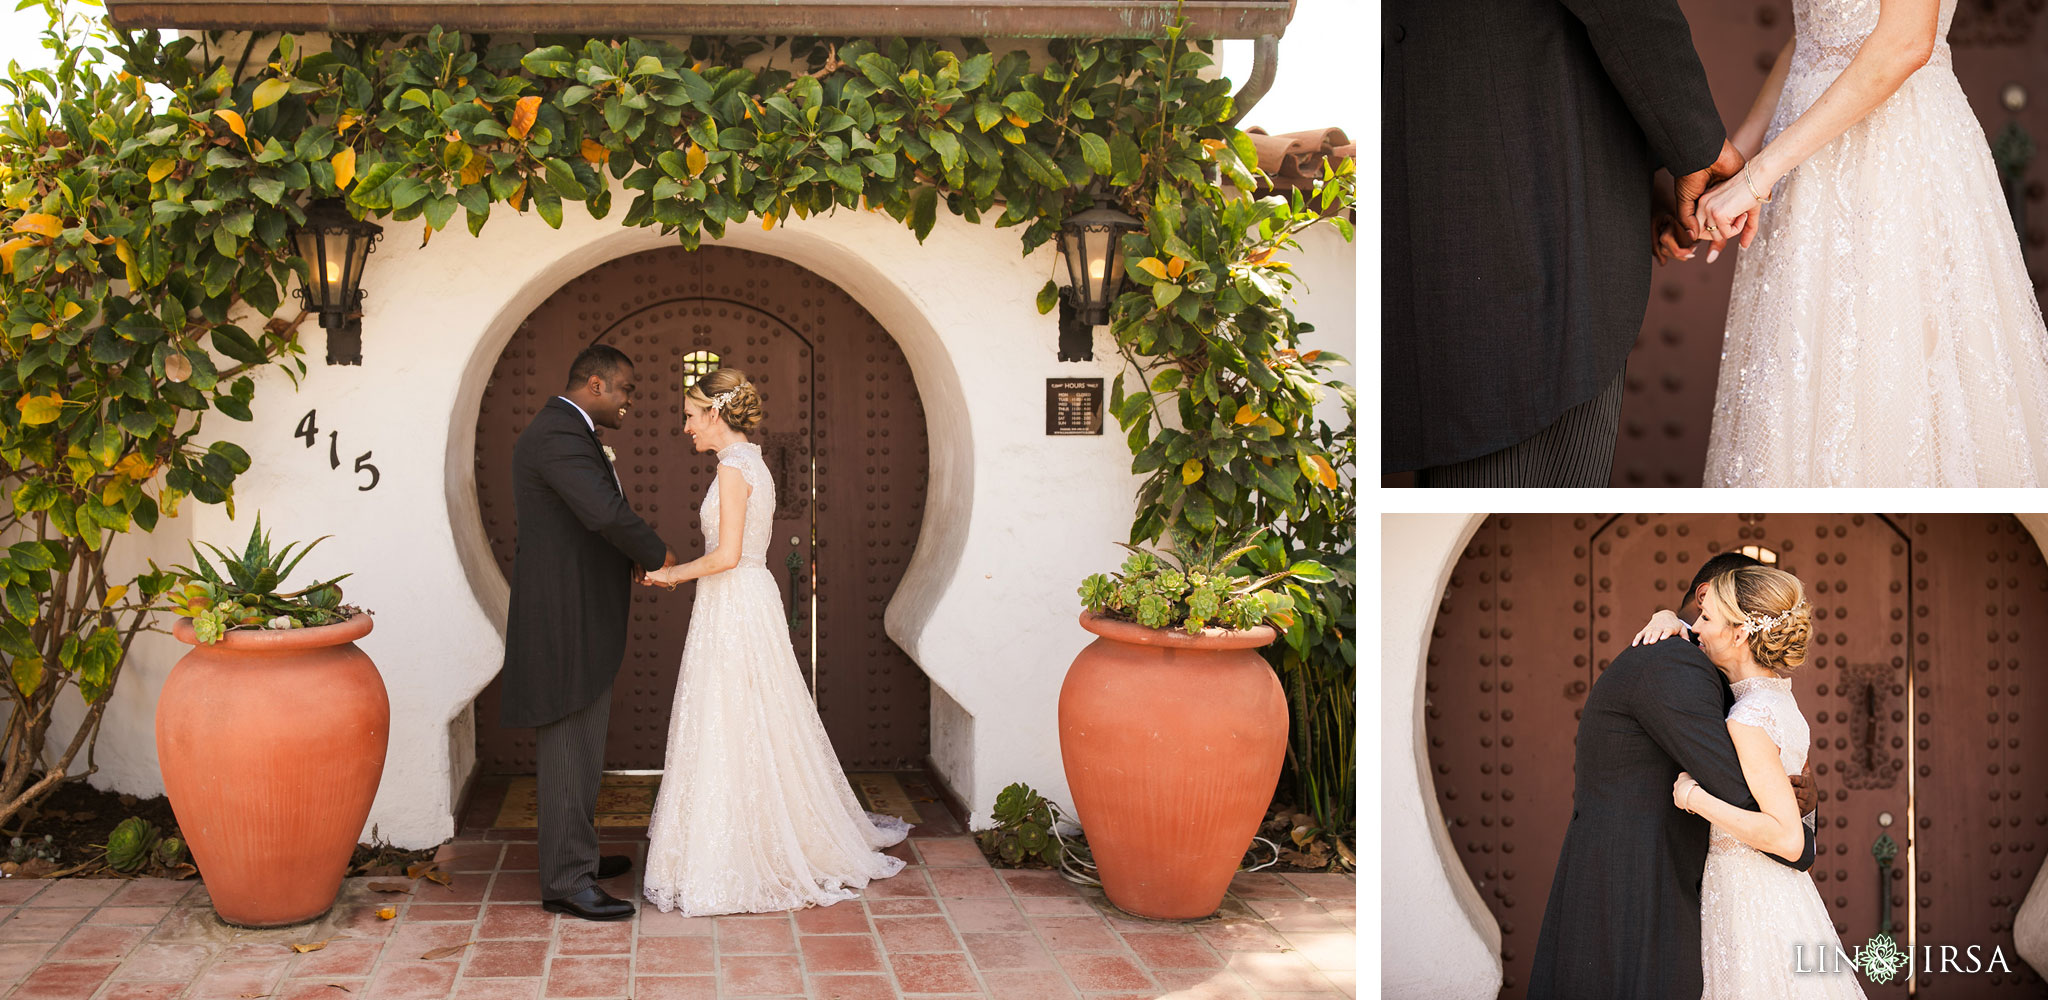 009 casa romantica san clemente wedding photography